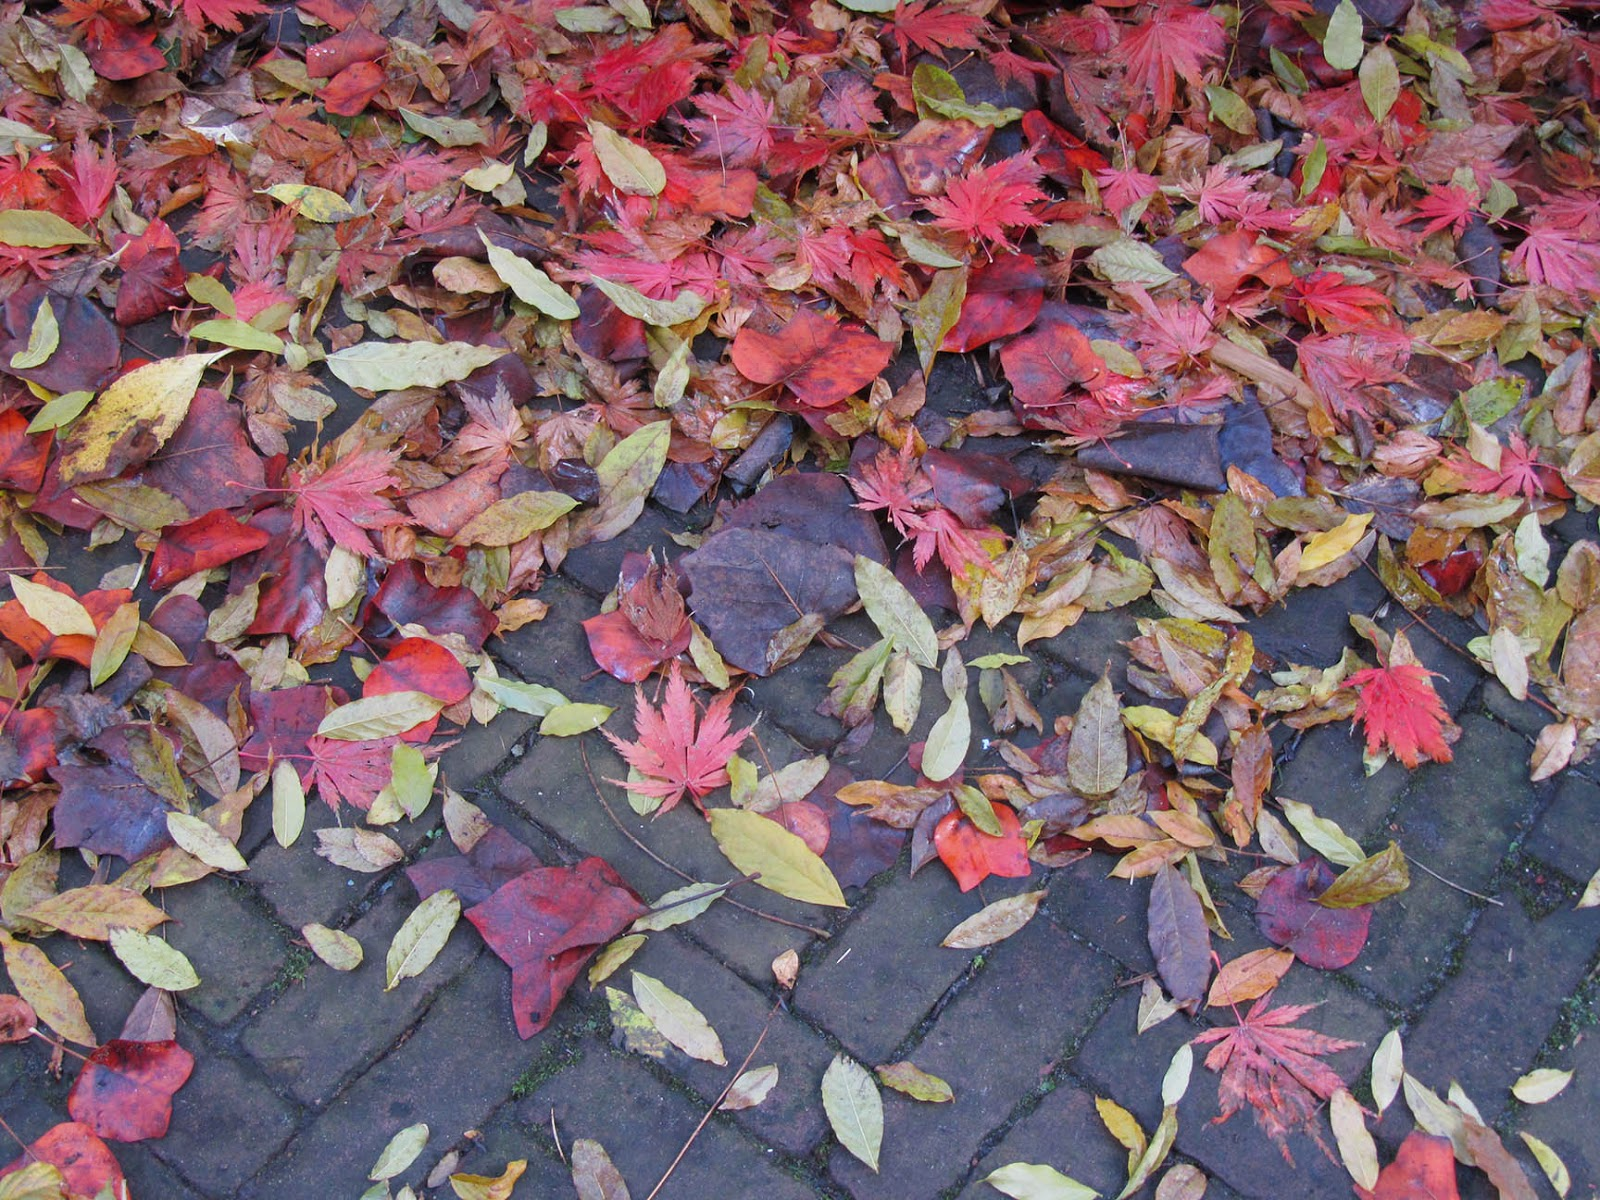 red leaves on sidewalk